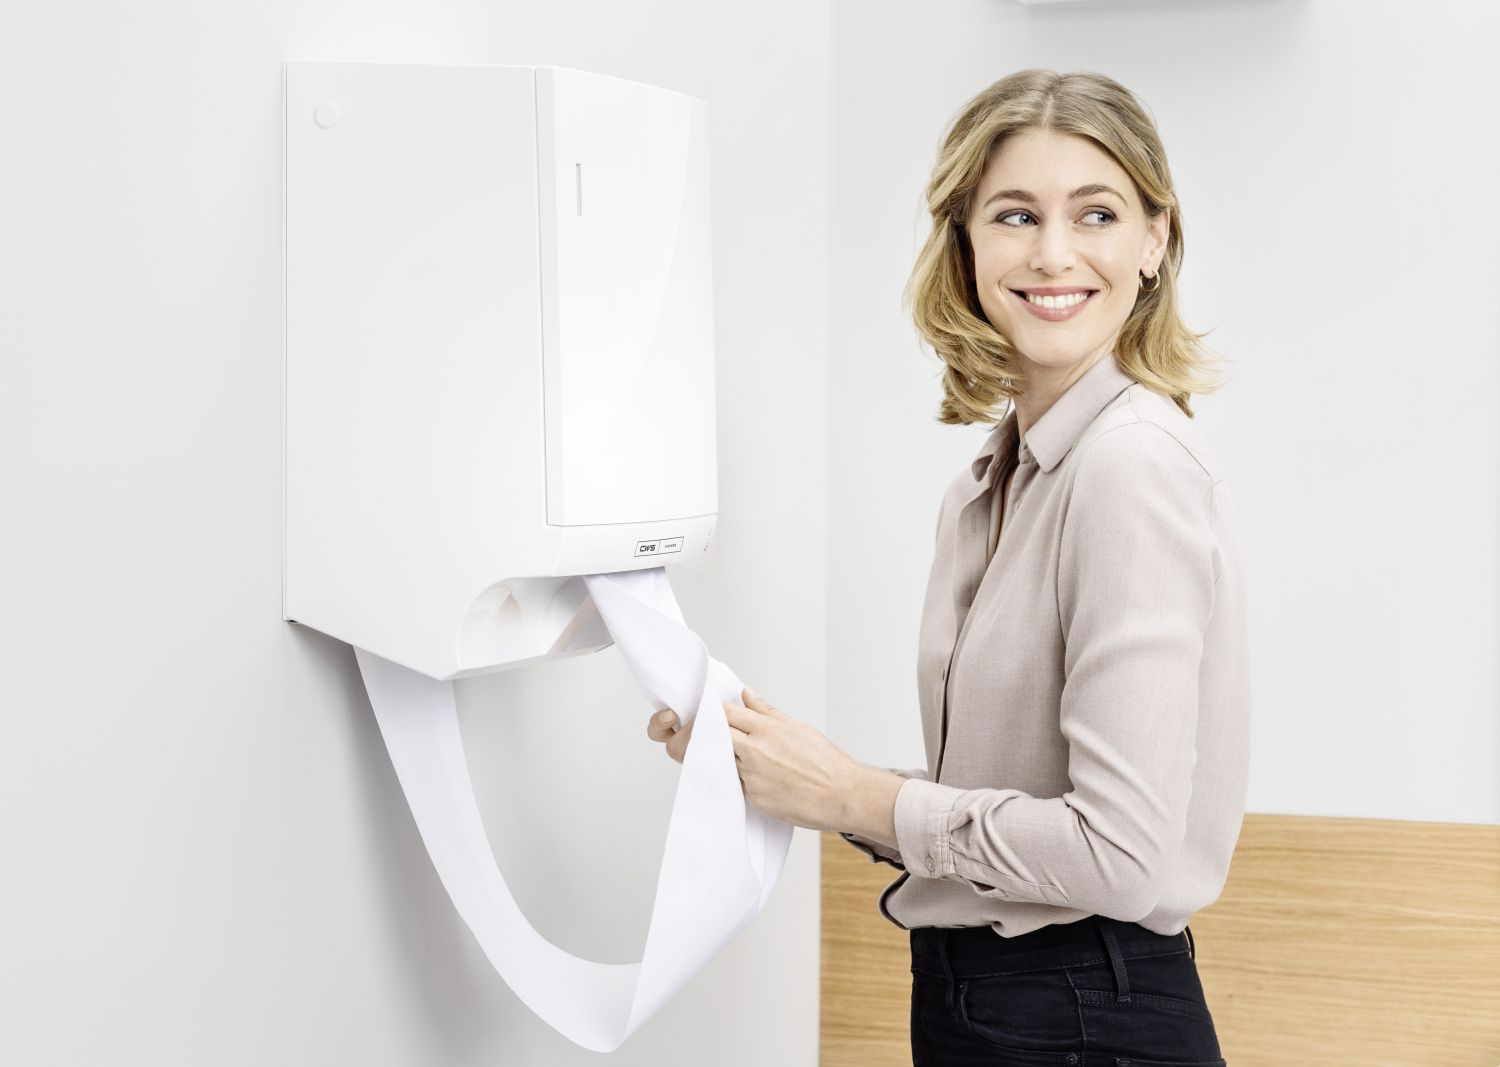 INT-HY-hand-drying-PL-Dry-NT-woman-business-Q